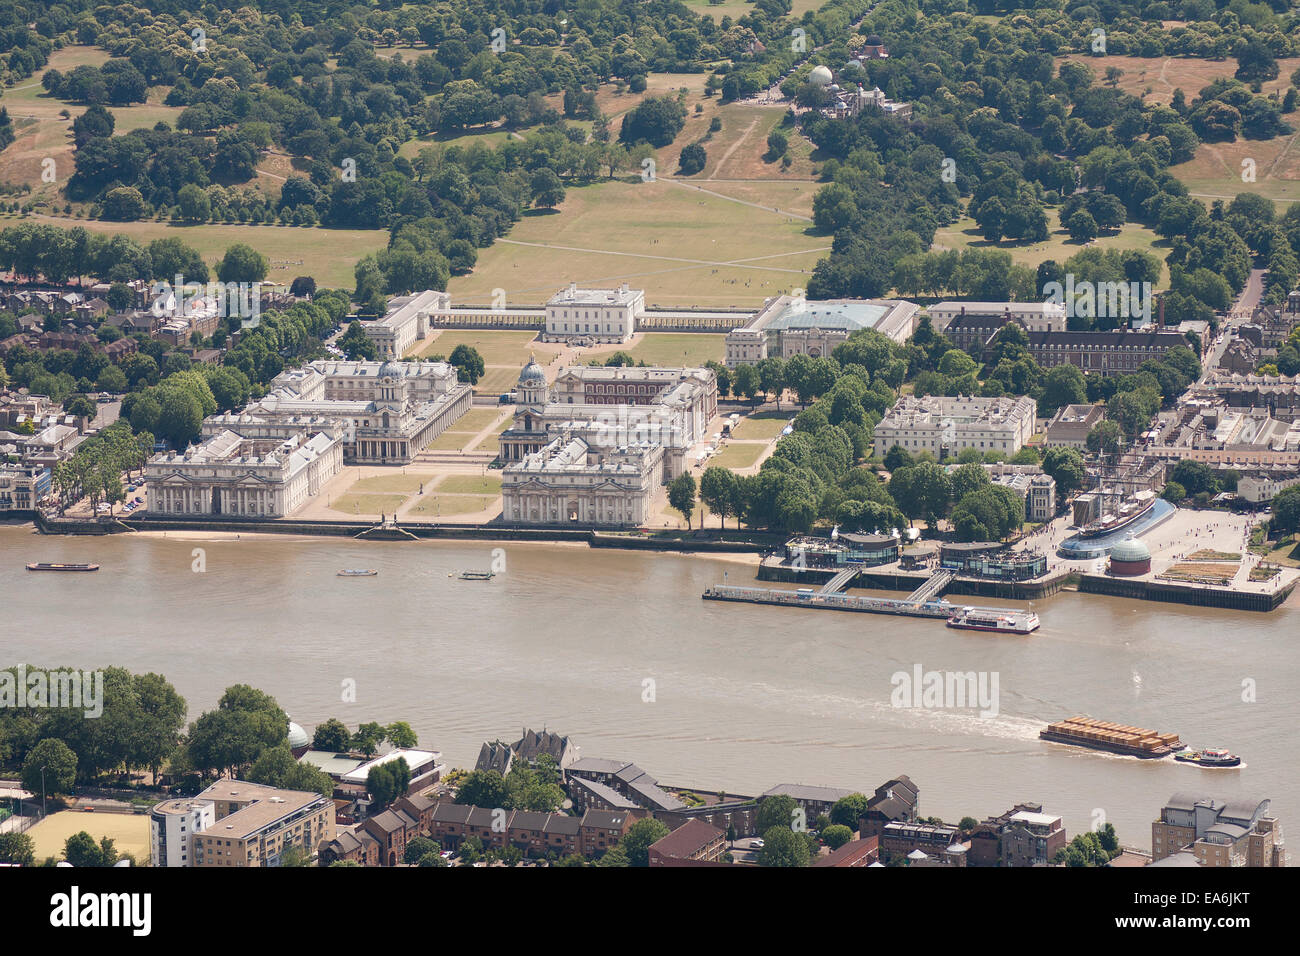 UK, London, Greenwich Maritime Museum - Stock Image